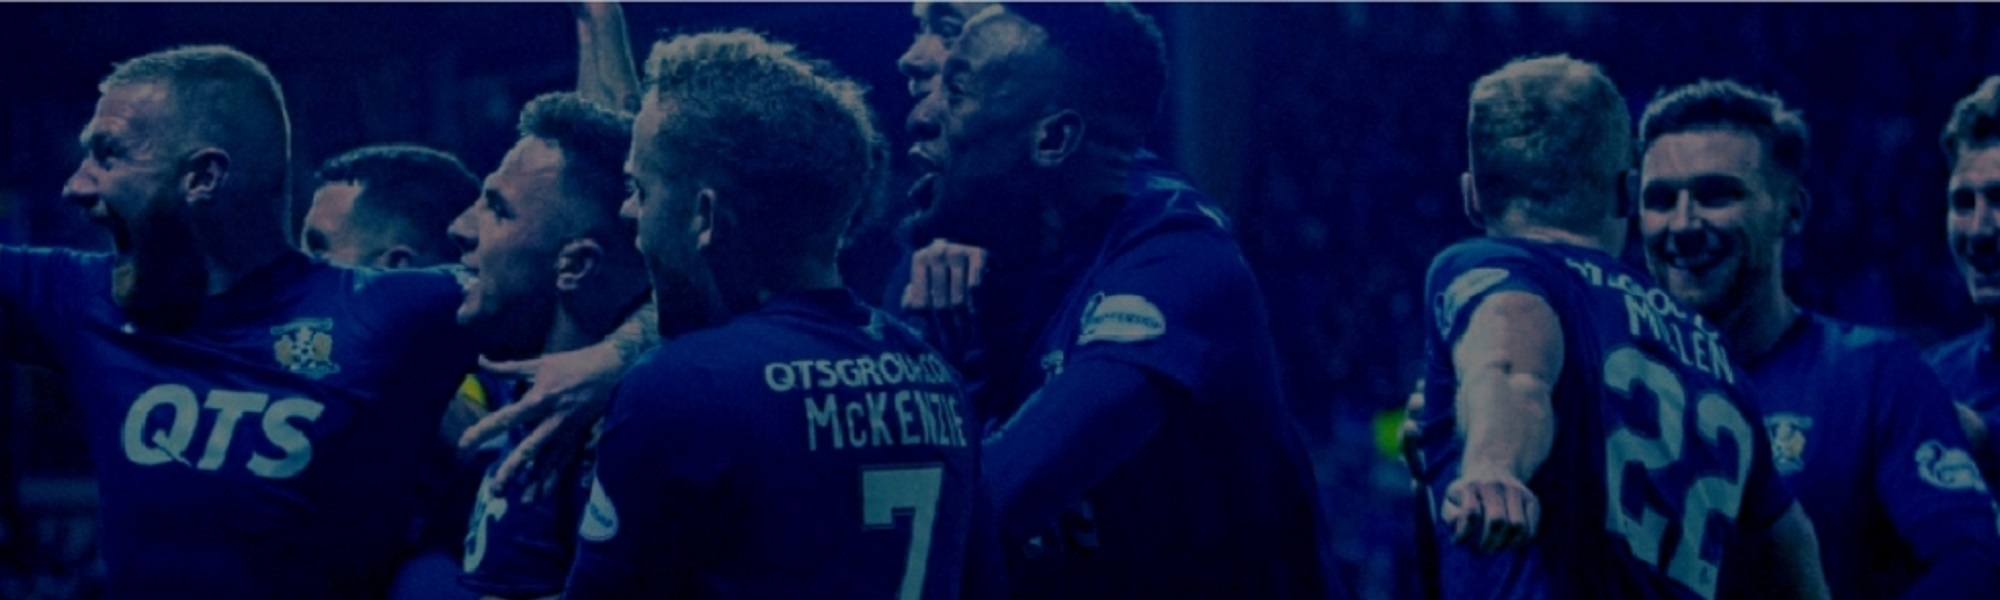 Killie 2-1 Rangers